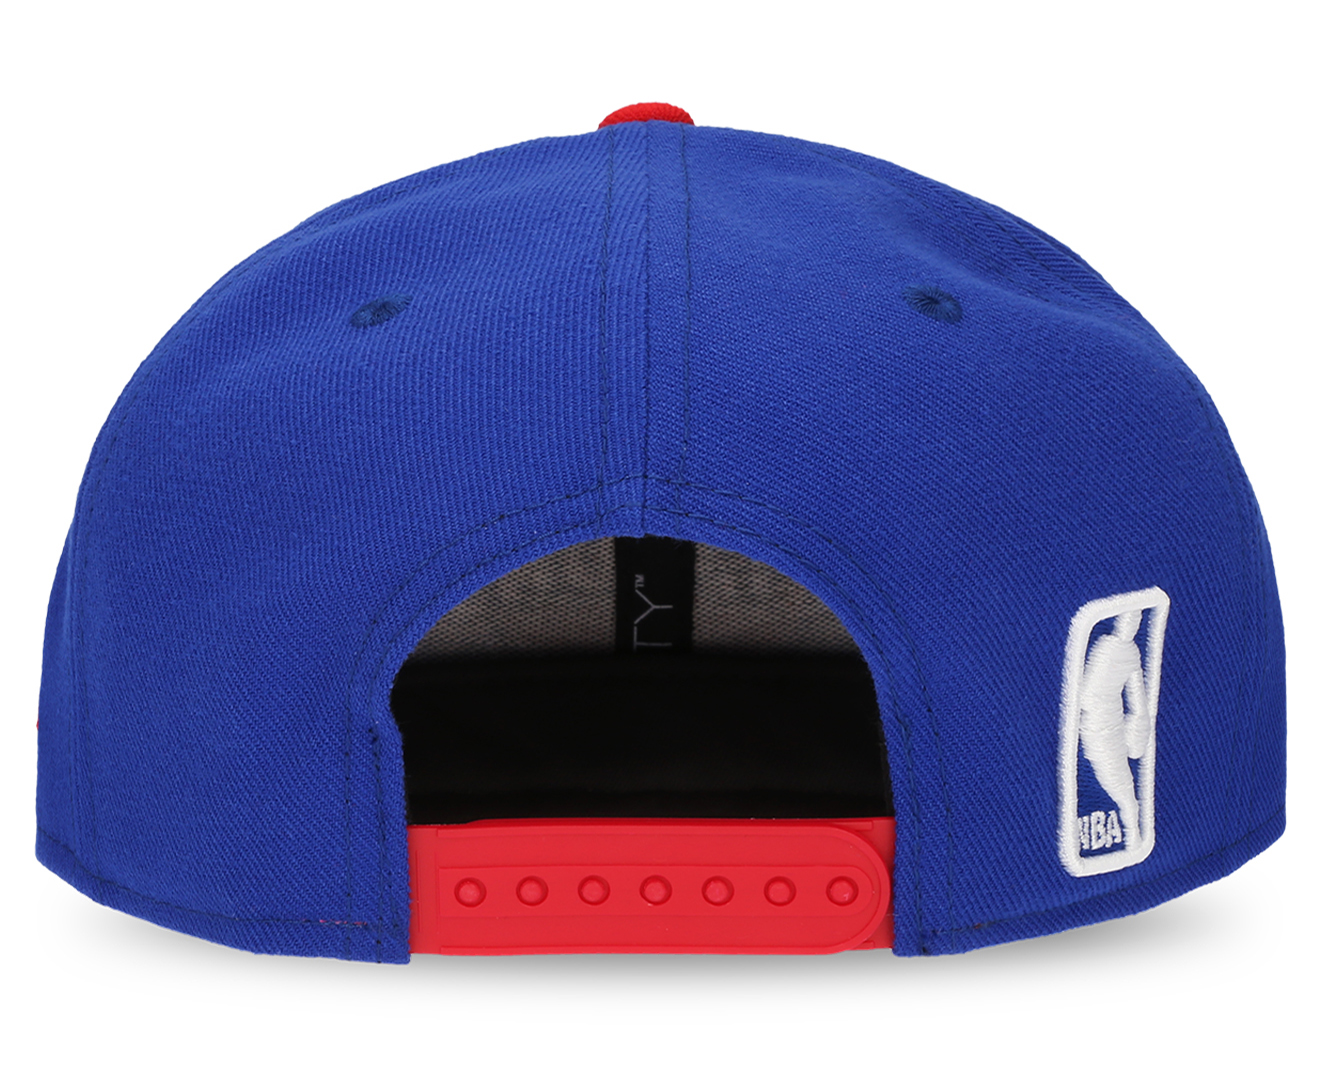 quality design b1d45 09ee0 New Era Detroit Pistons 9FIFTY Snapback Cap - Blue Red   Catch.co.nz